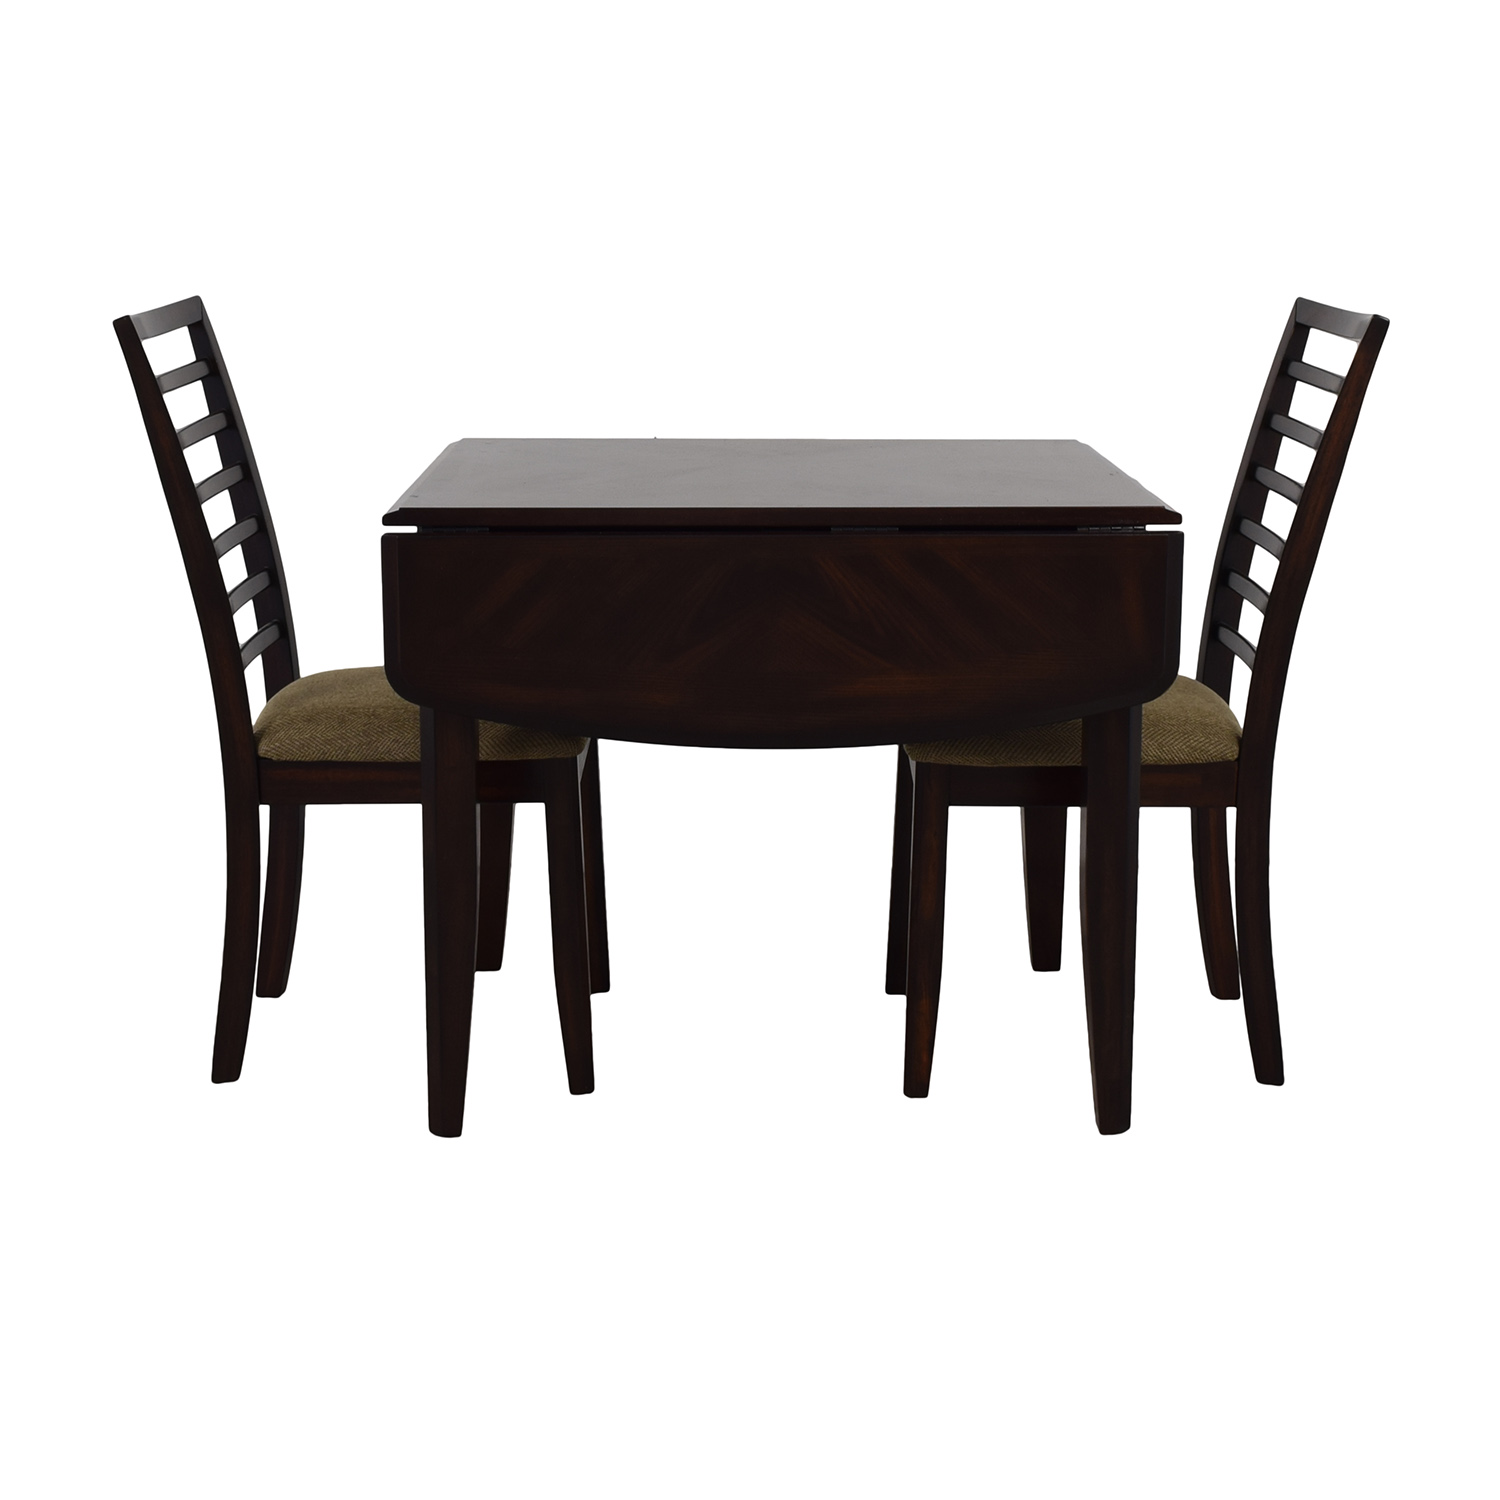 Raymour And Flanigan Dining Chairs: Raymour & Flanigan Raymour & Flanigan Fold Down